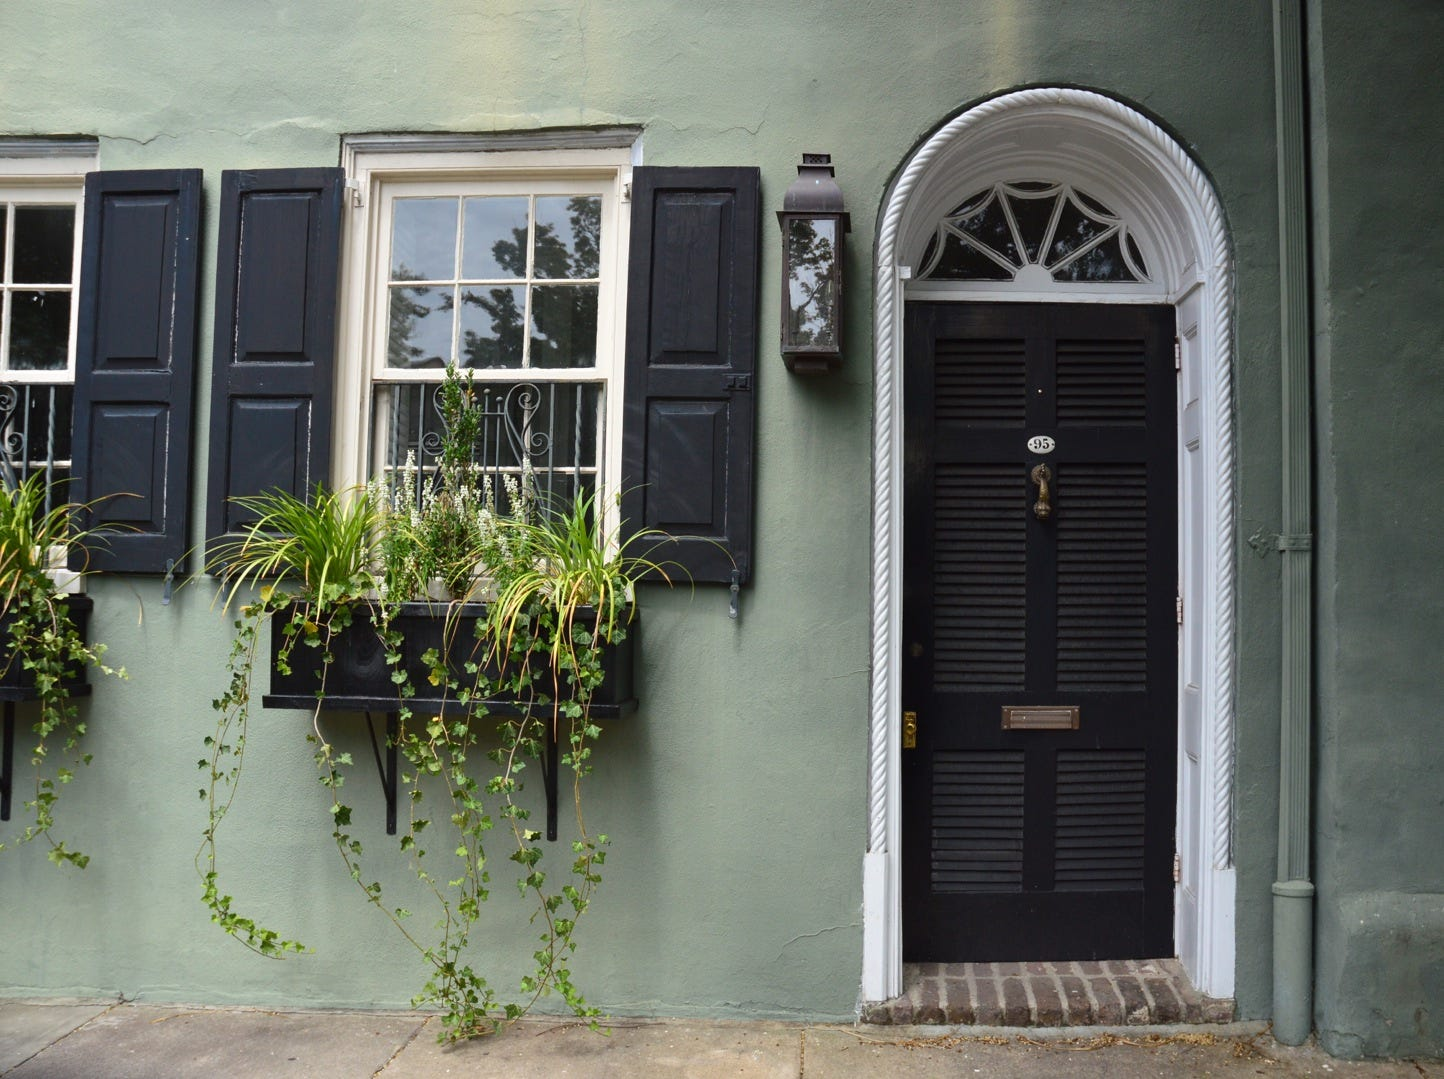 A stroll through Charleston will lead to some beautiful architecture along with a history lesson or two.